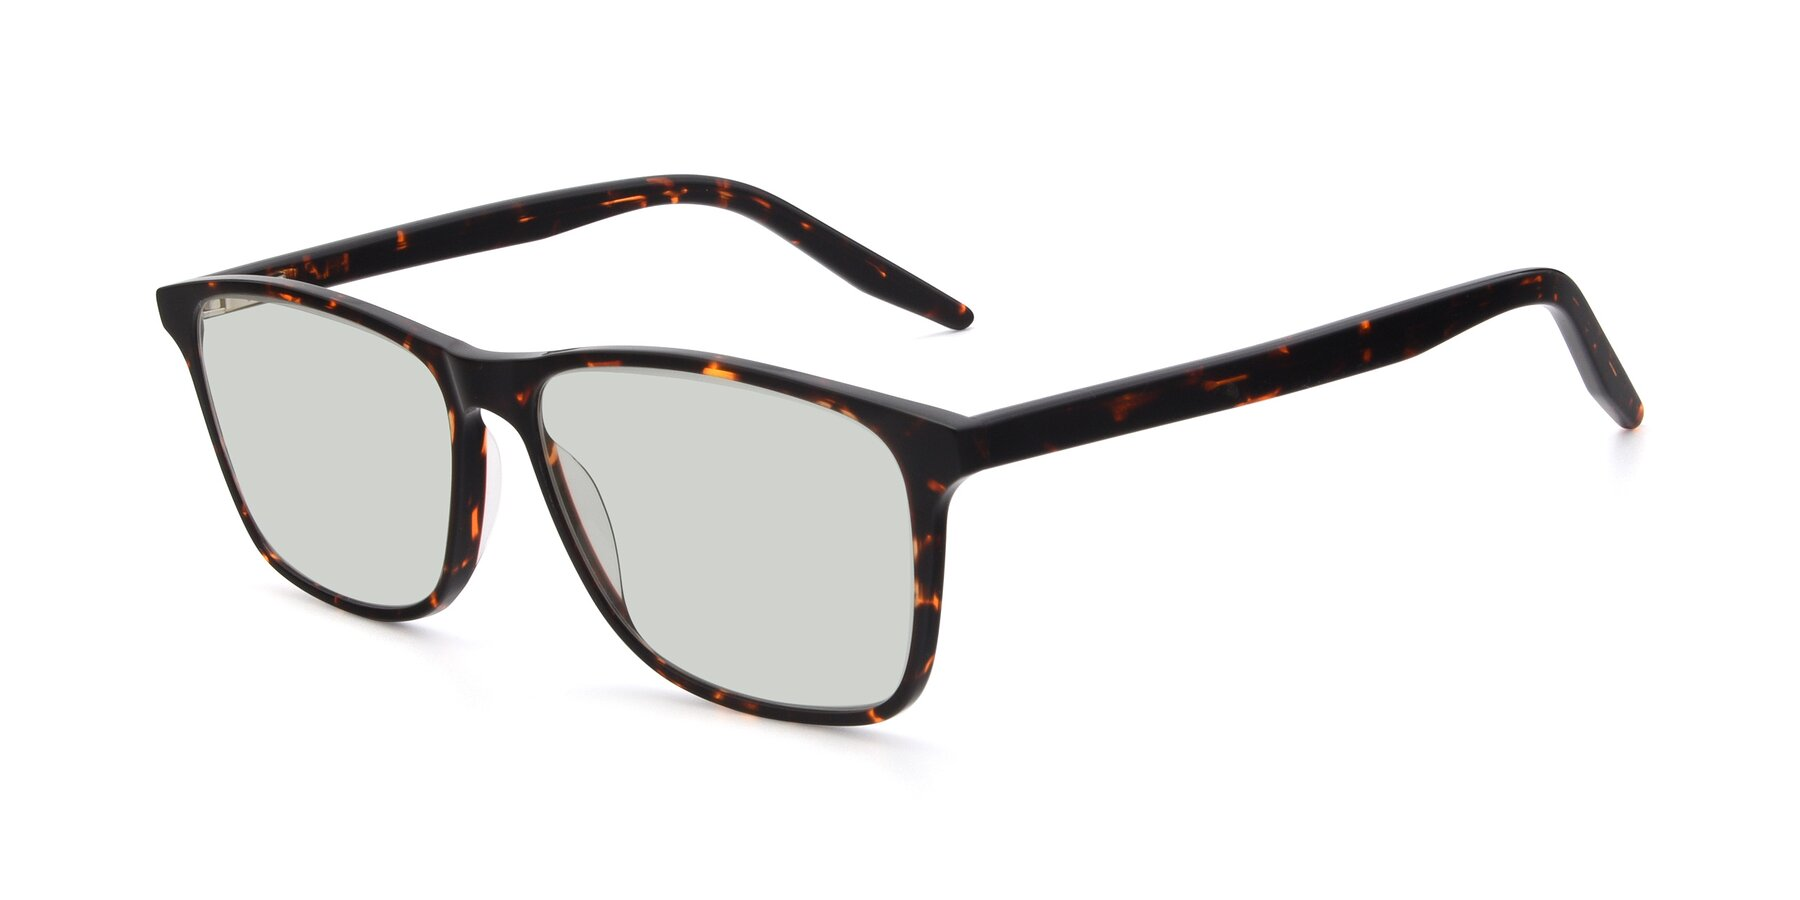 Angle of 17500 in Tortoise with Light Green Tinted Lenses